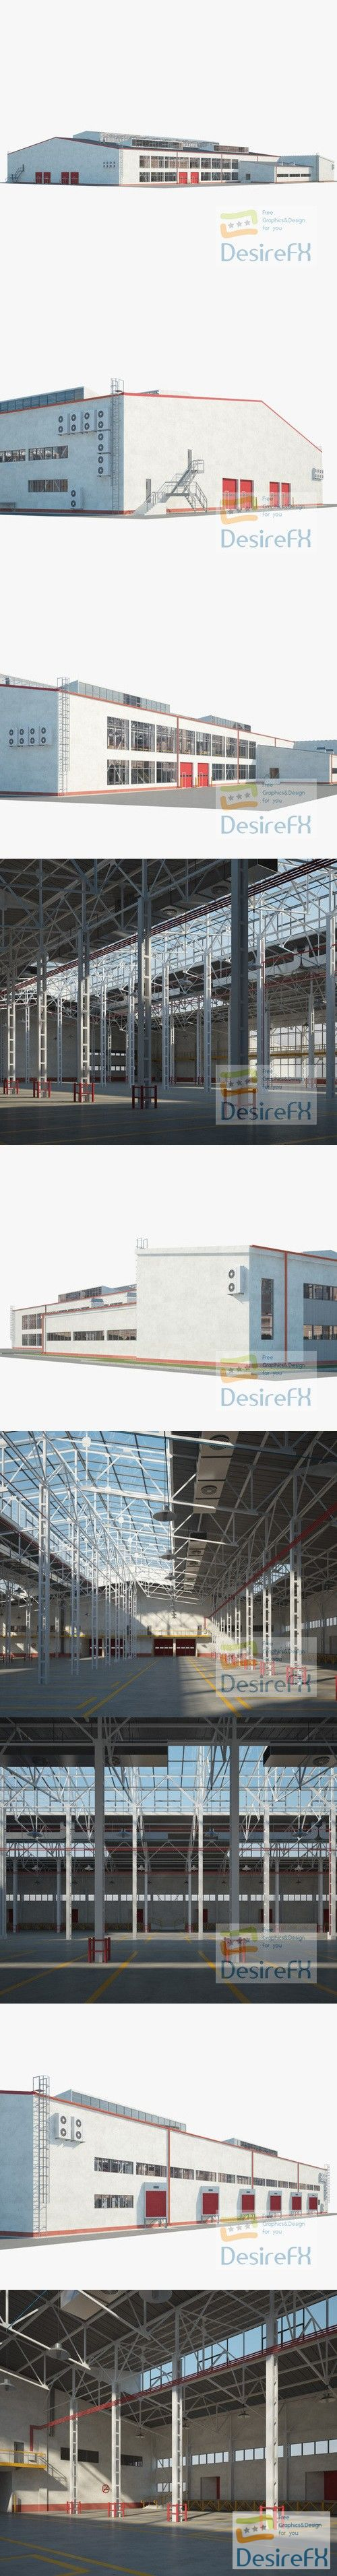 Warehouse 01 Building 3D Model